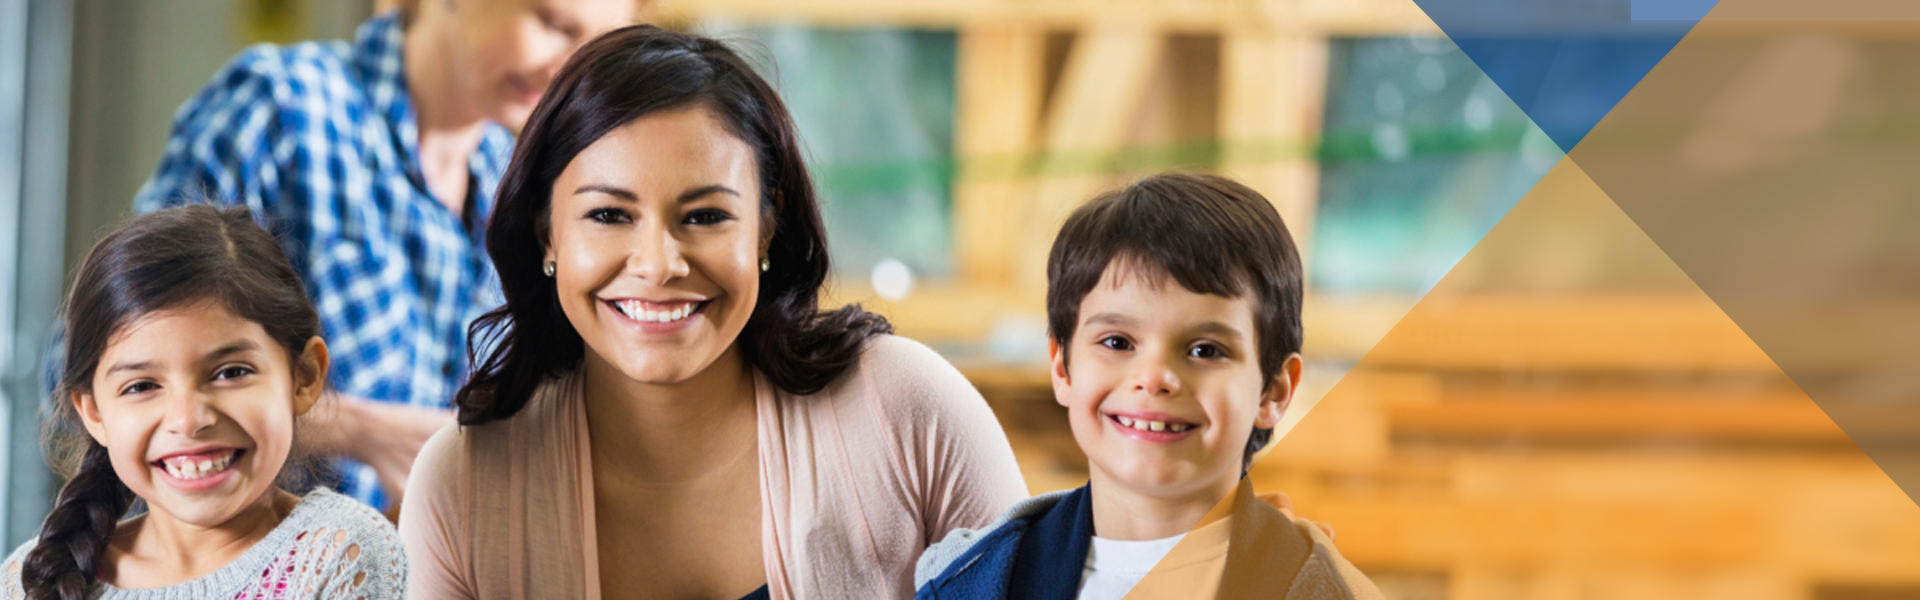 Smiling woman with boy and girl on either side with her hands placed on their upper back.